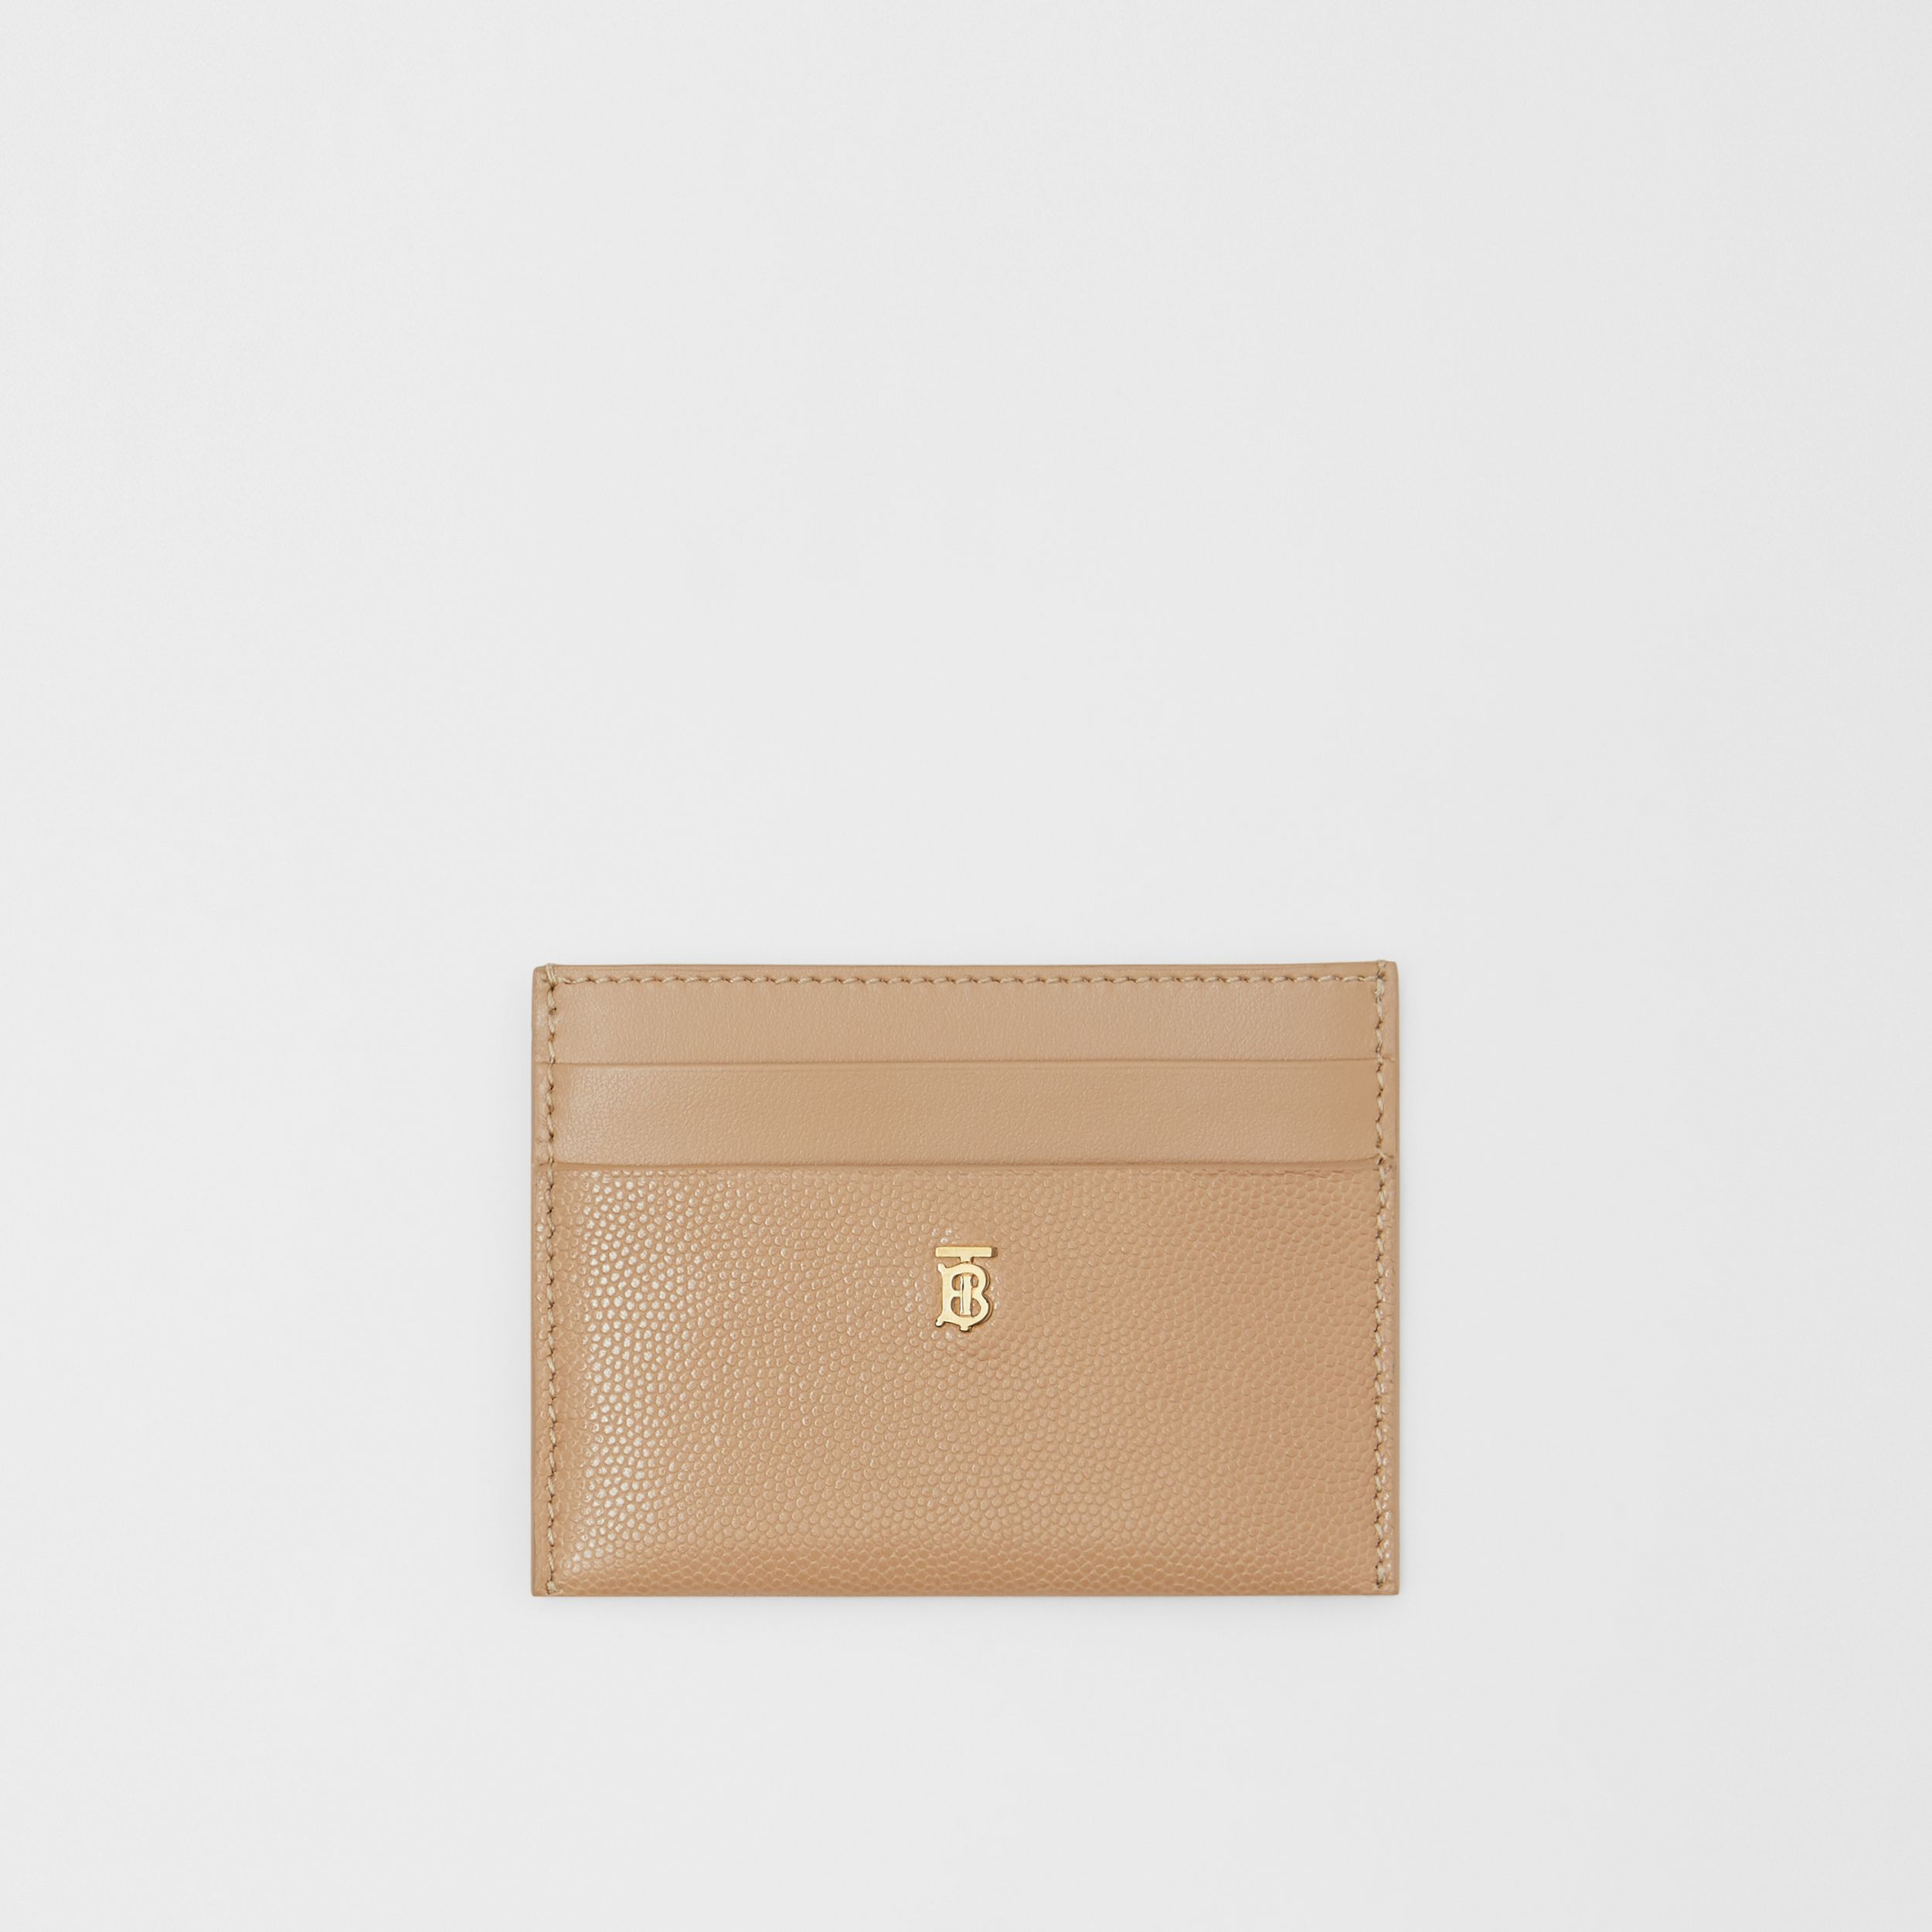 Monogram Motif Leather Card Case in Archive Beige - Women | Burberry - 1